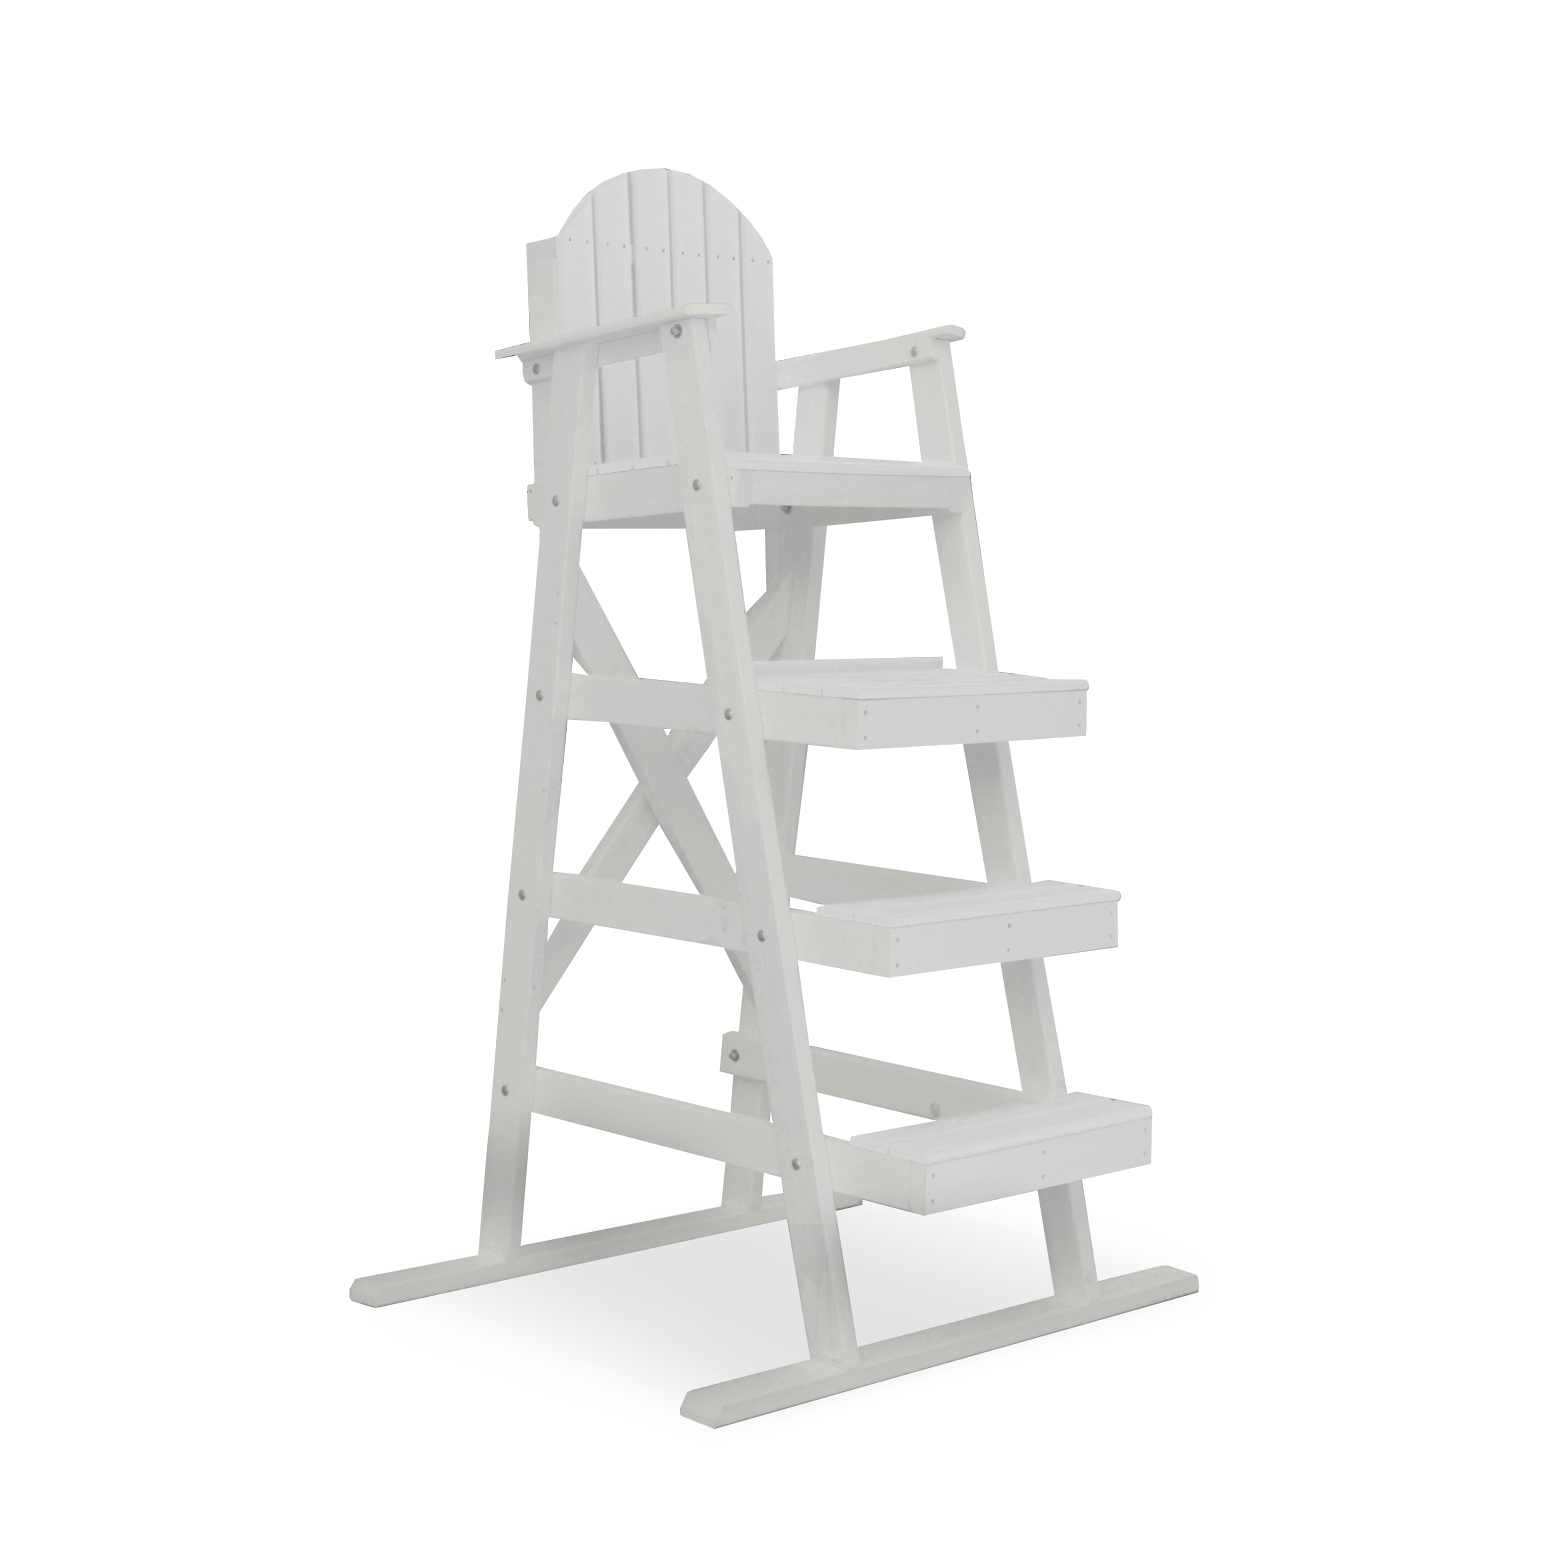 Good Recycled Plastic Lifeguard Chair By Jayhawk Plastics | AAA State Of Play